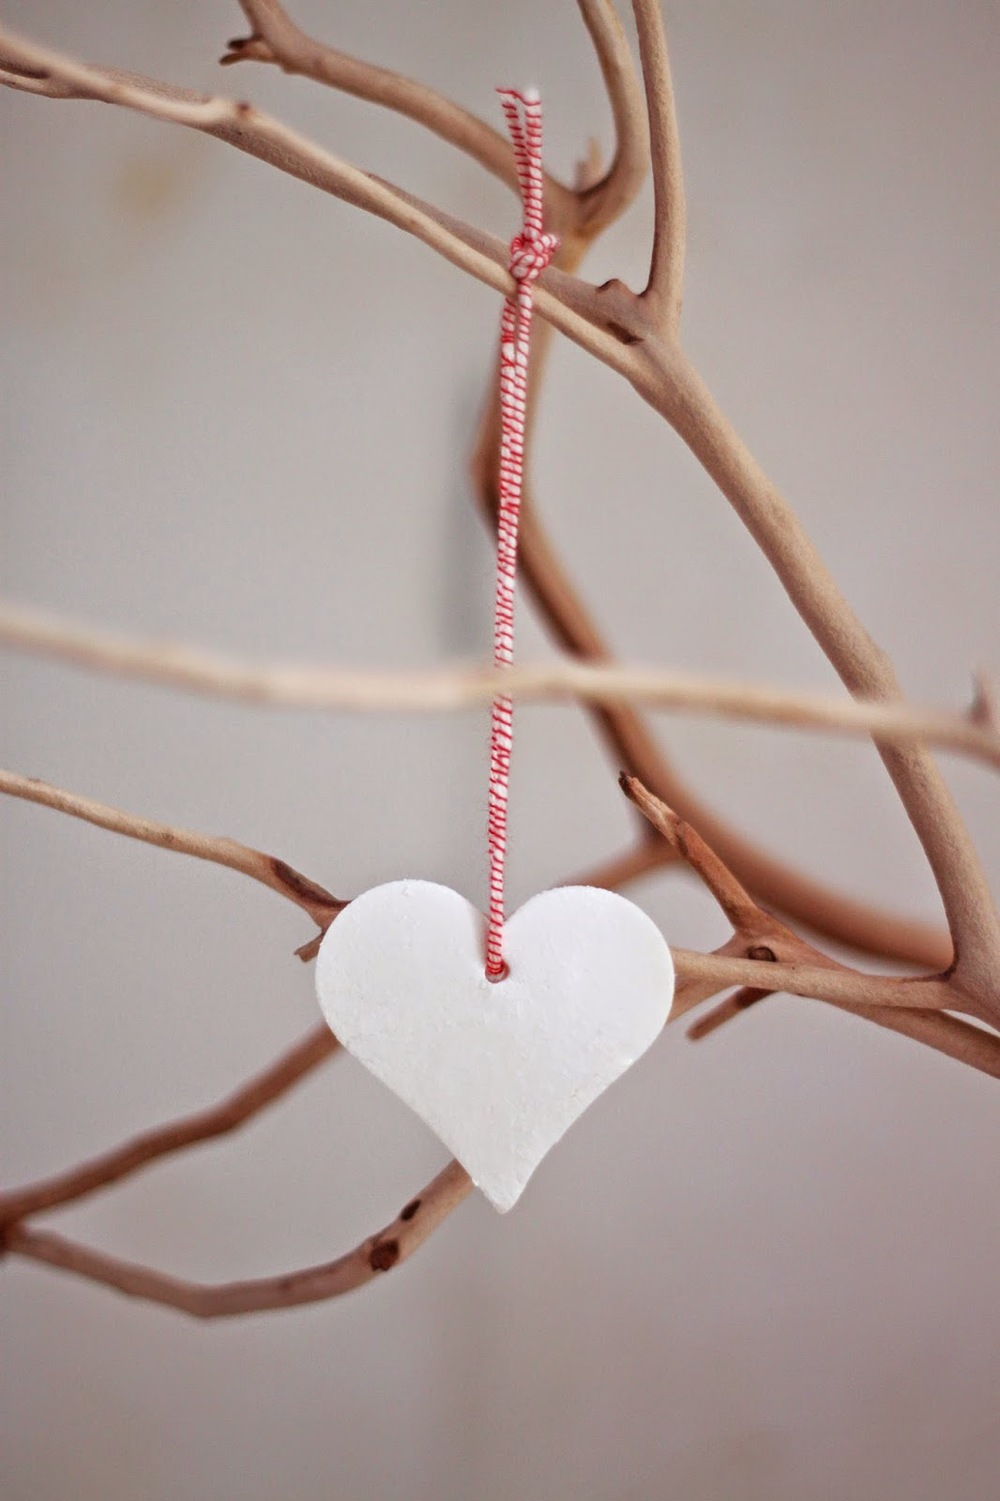 detail-white-heart.jpg